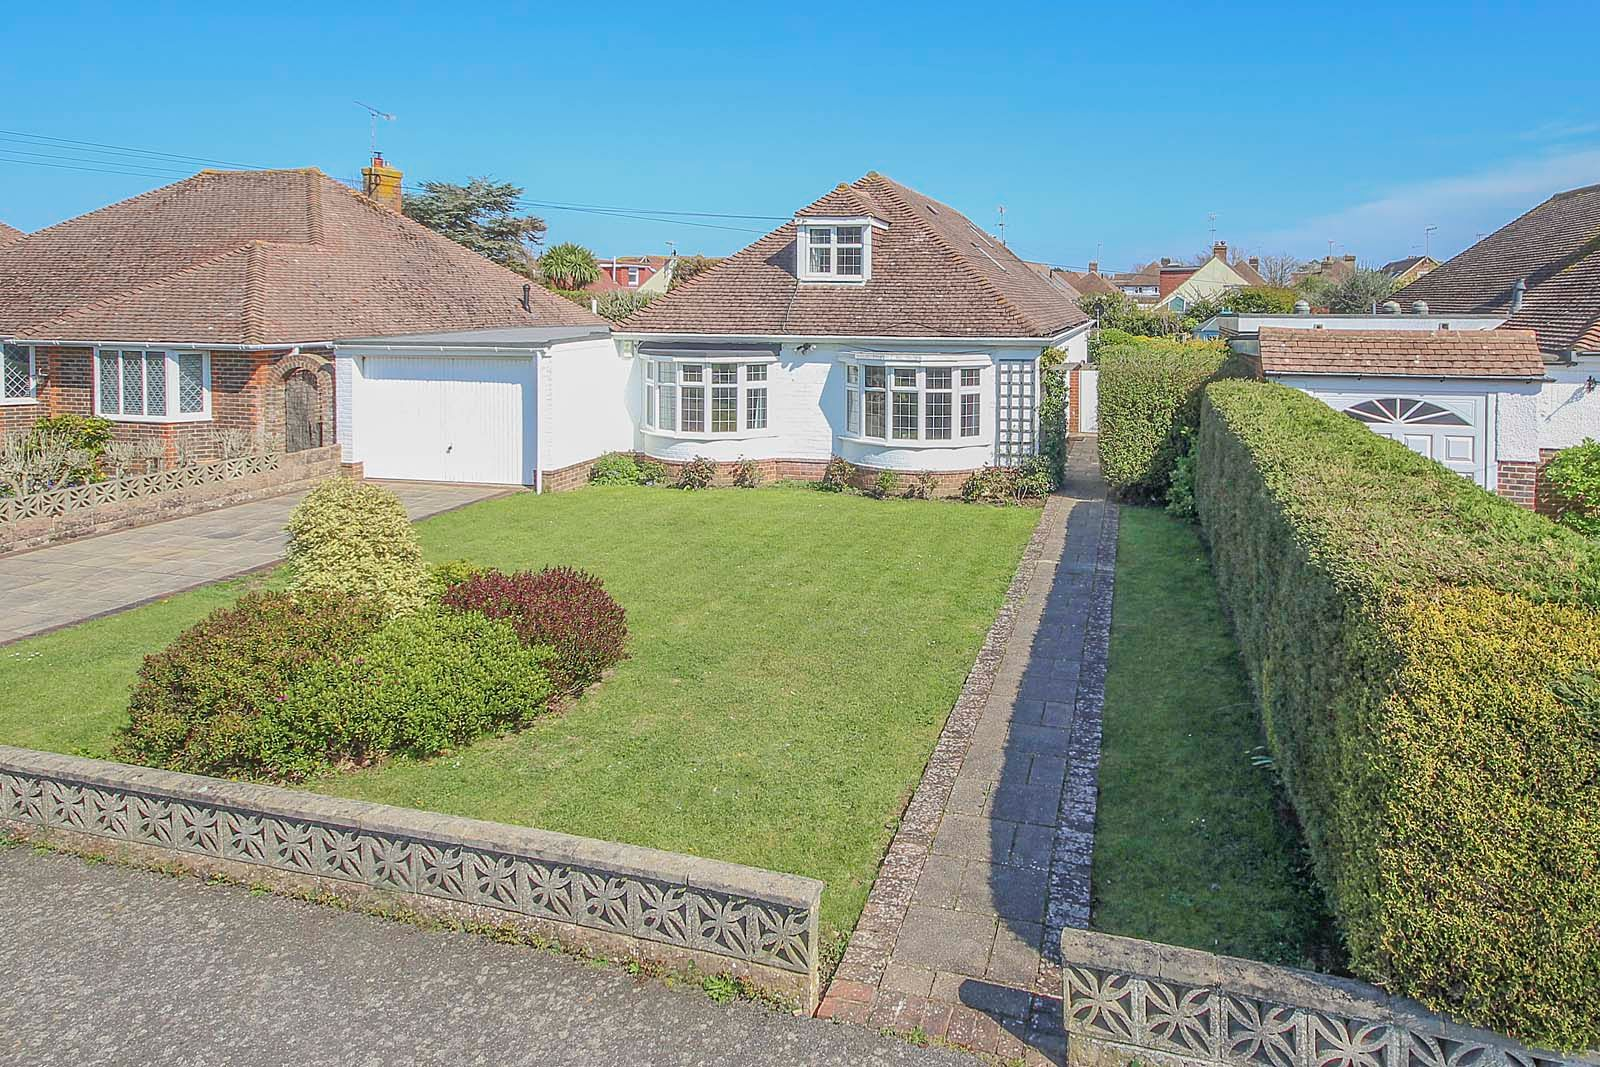 3 bed bungalow for sale in Sea Lane COMP MAY 19  - Property Image 1